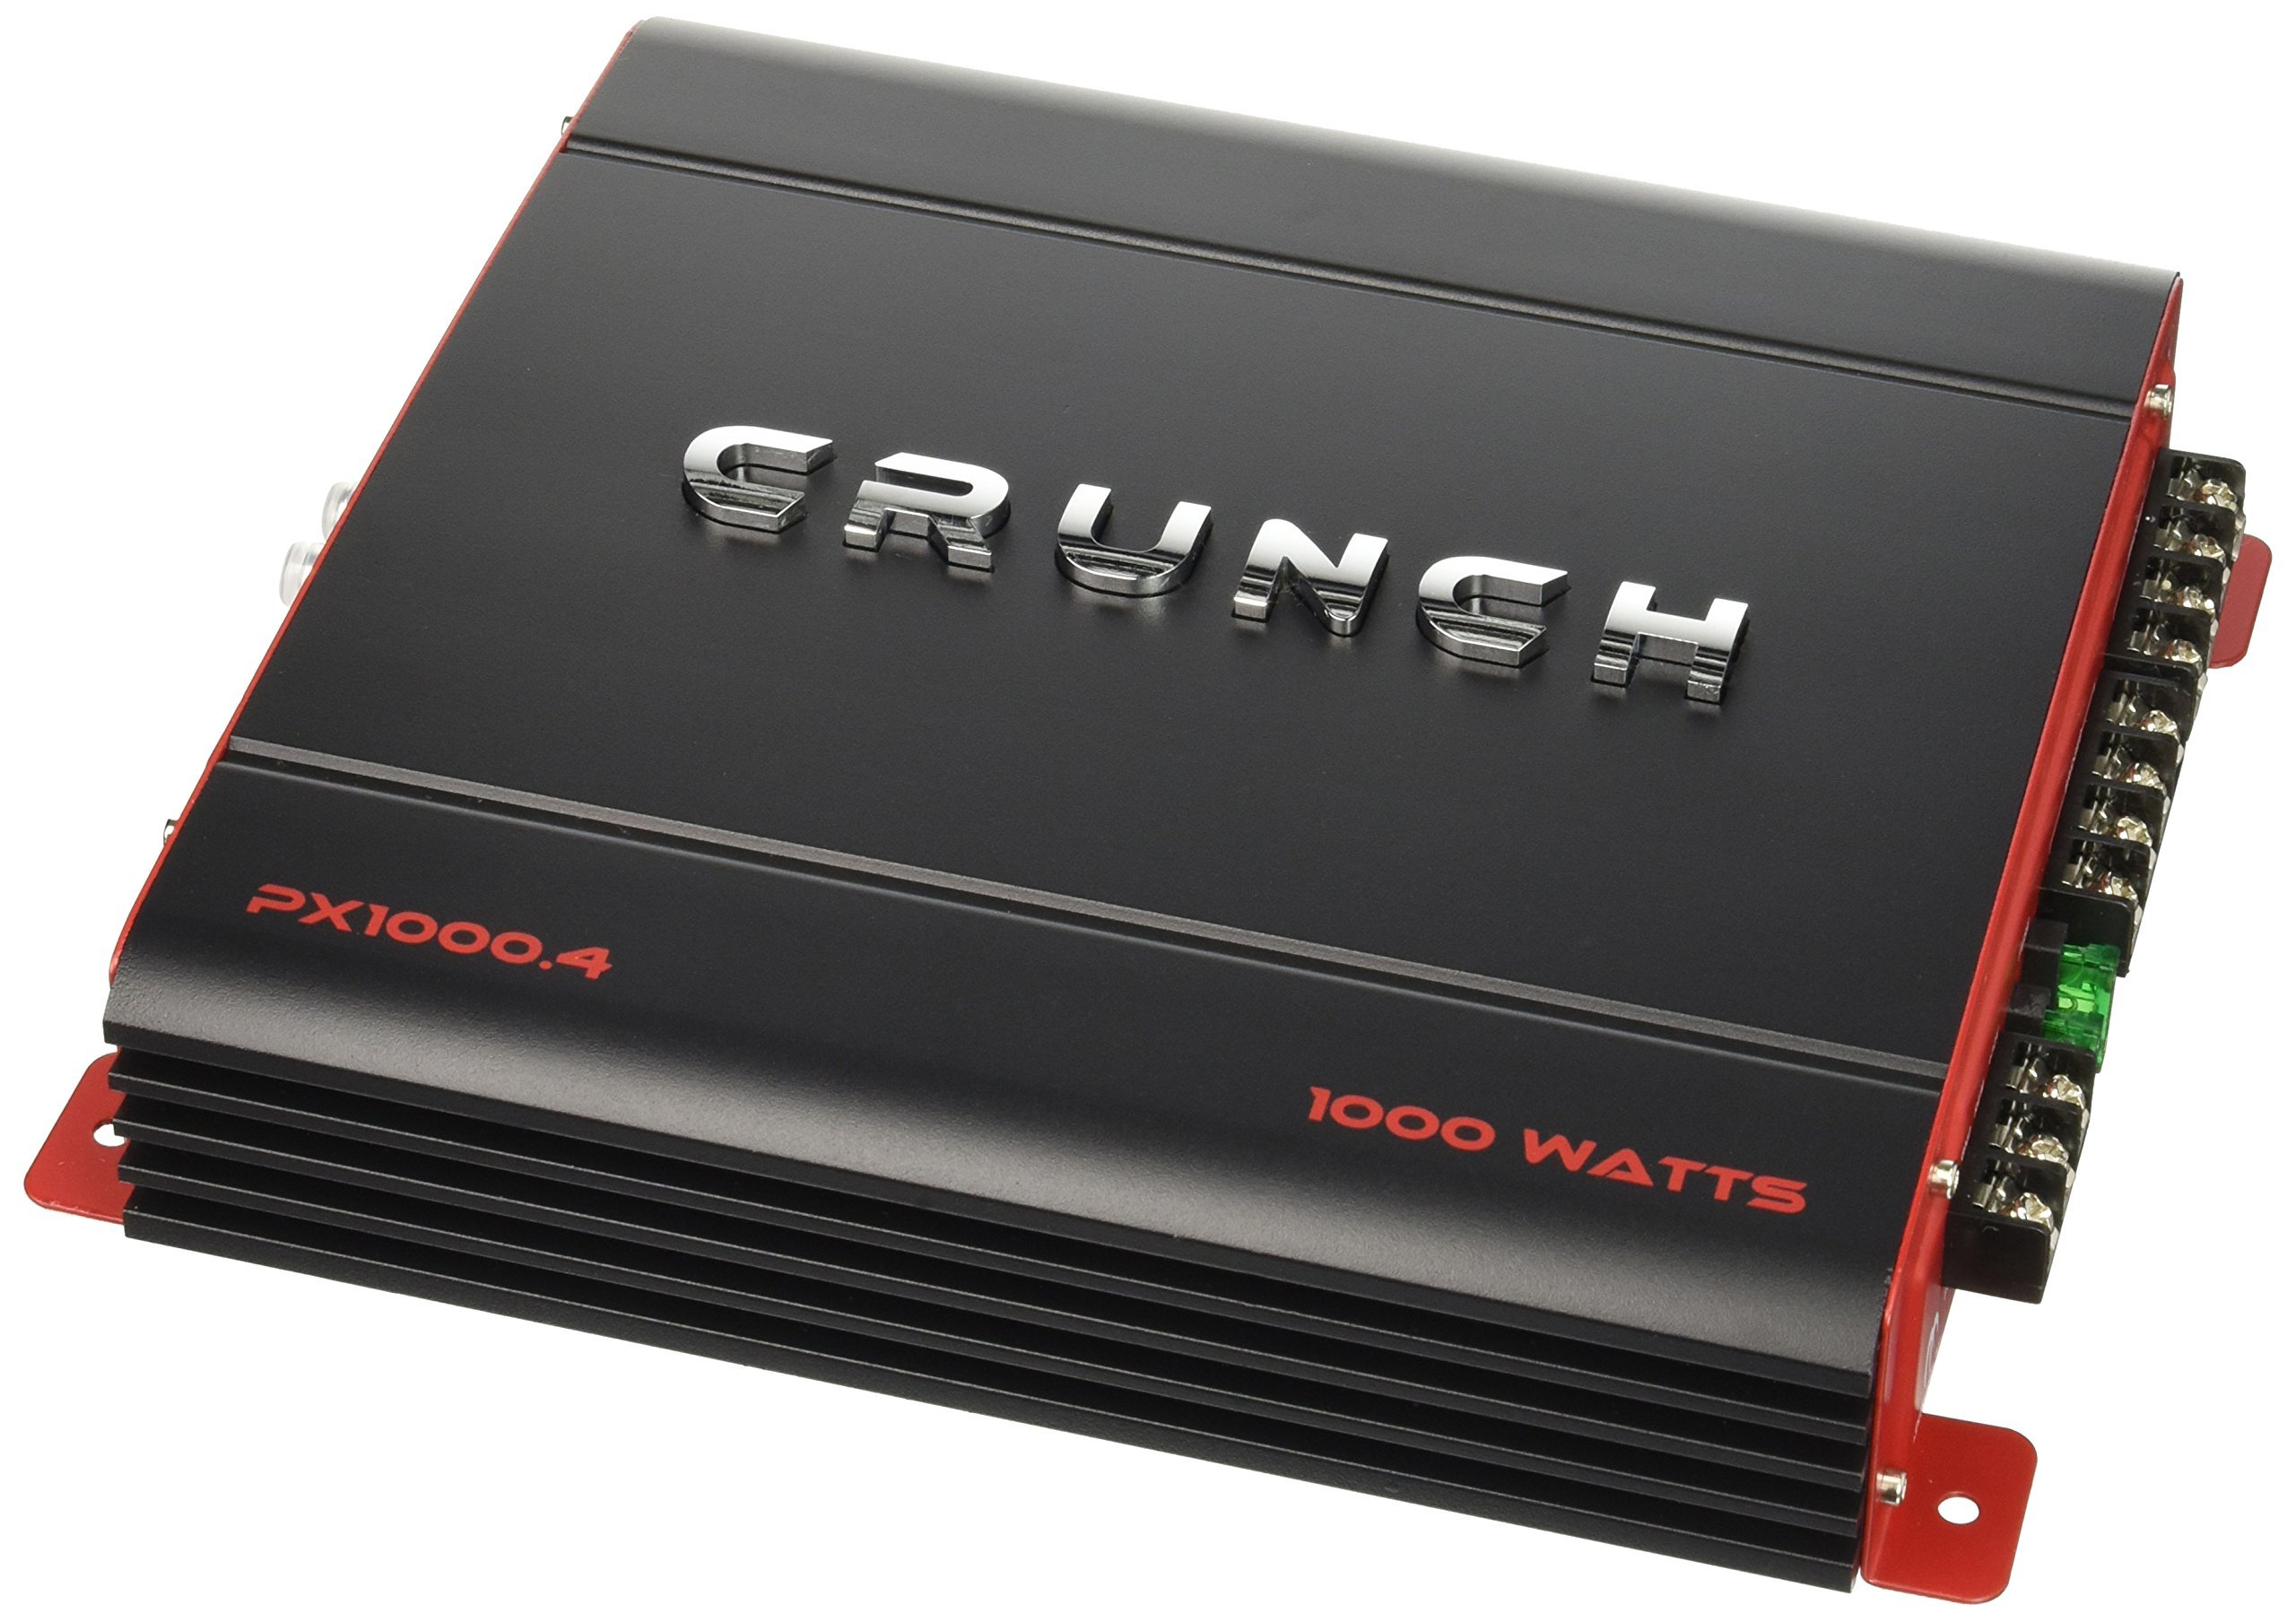 crunch PX1000.4 Power Amplifier (Class Ab, 4 Channels, 1,000 Watts)